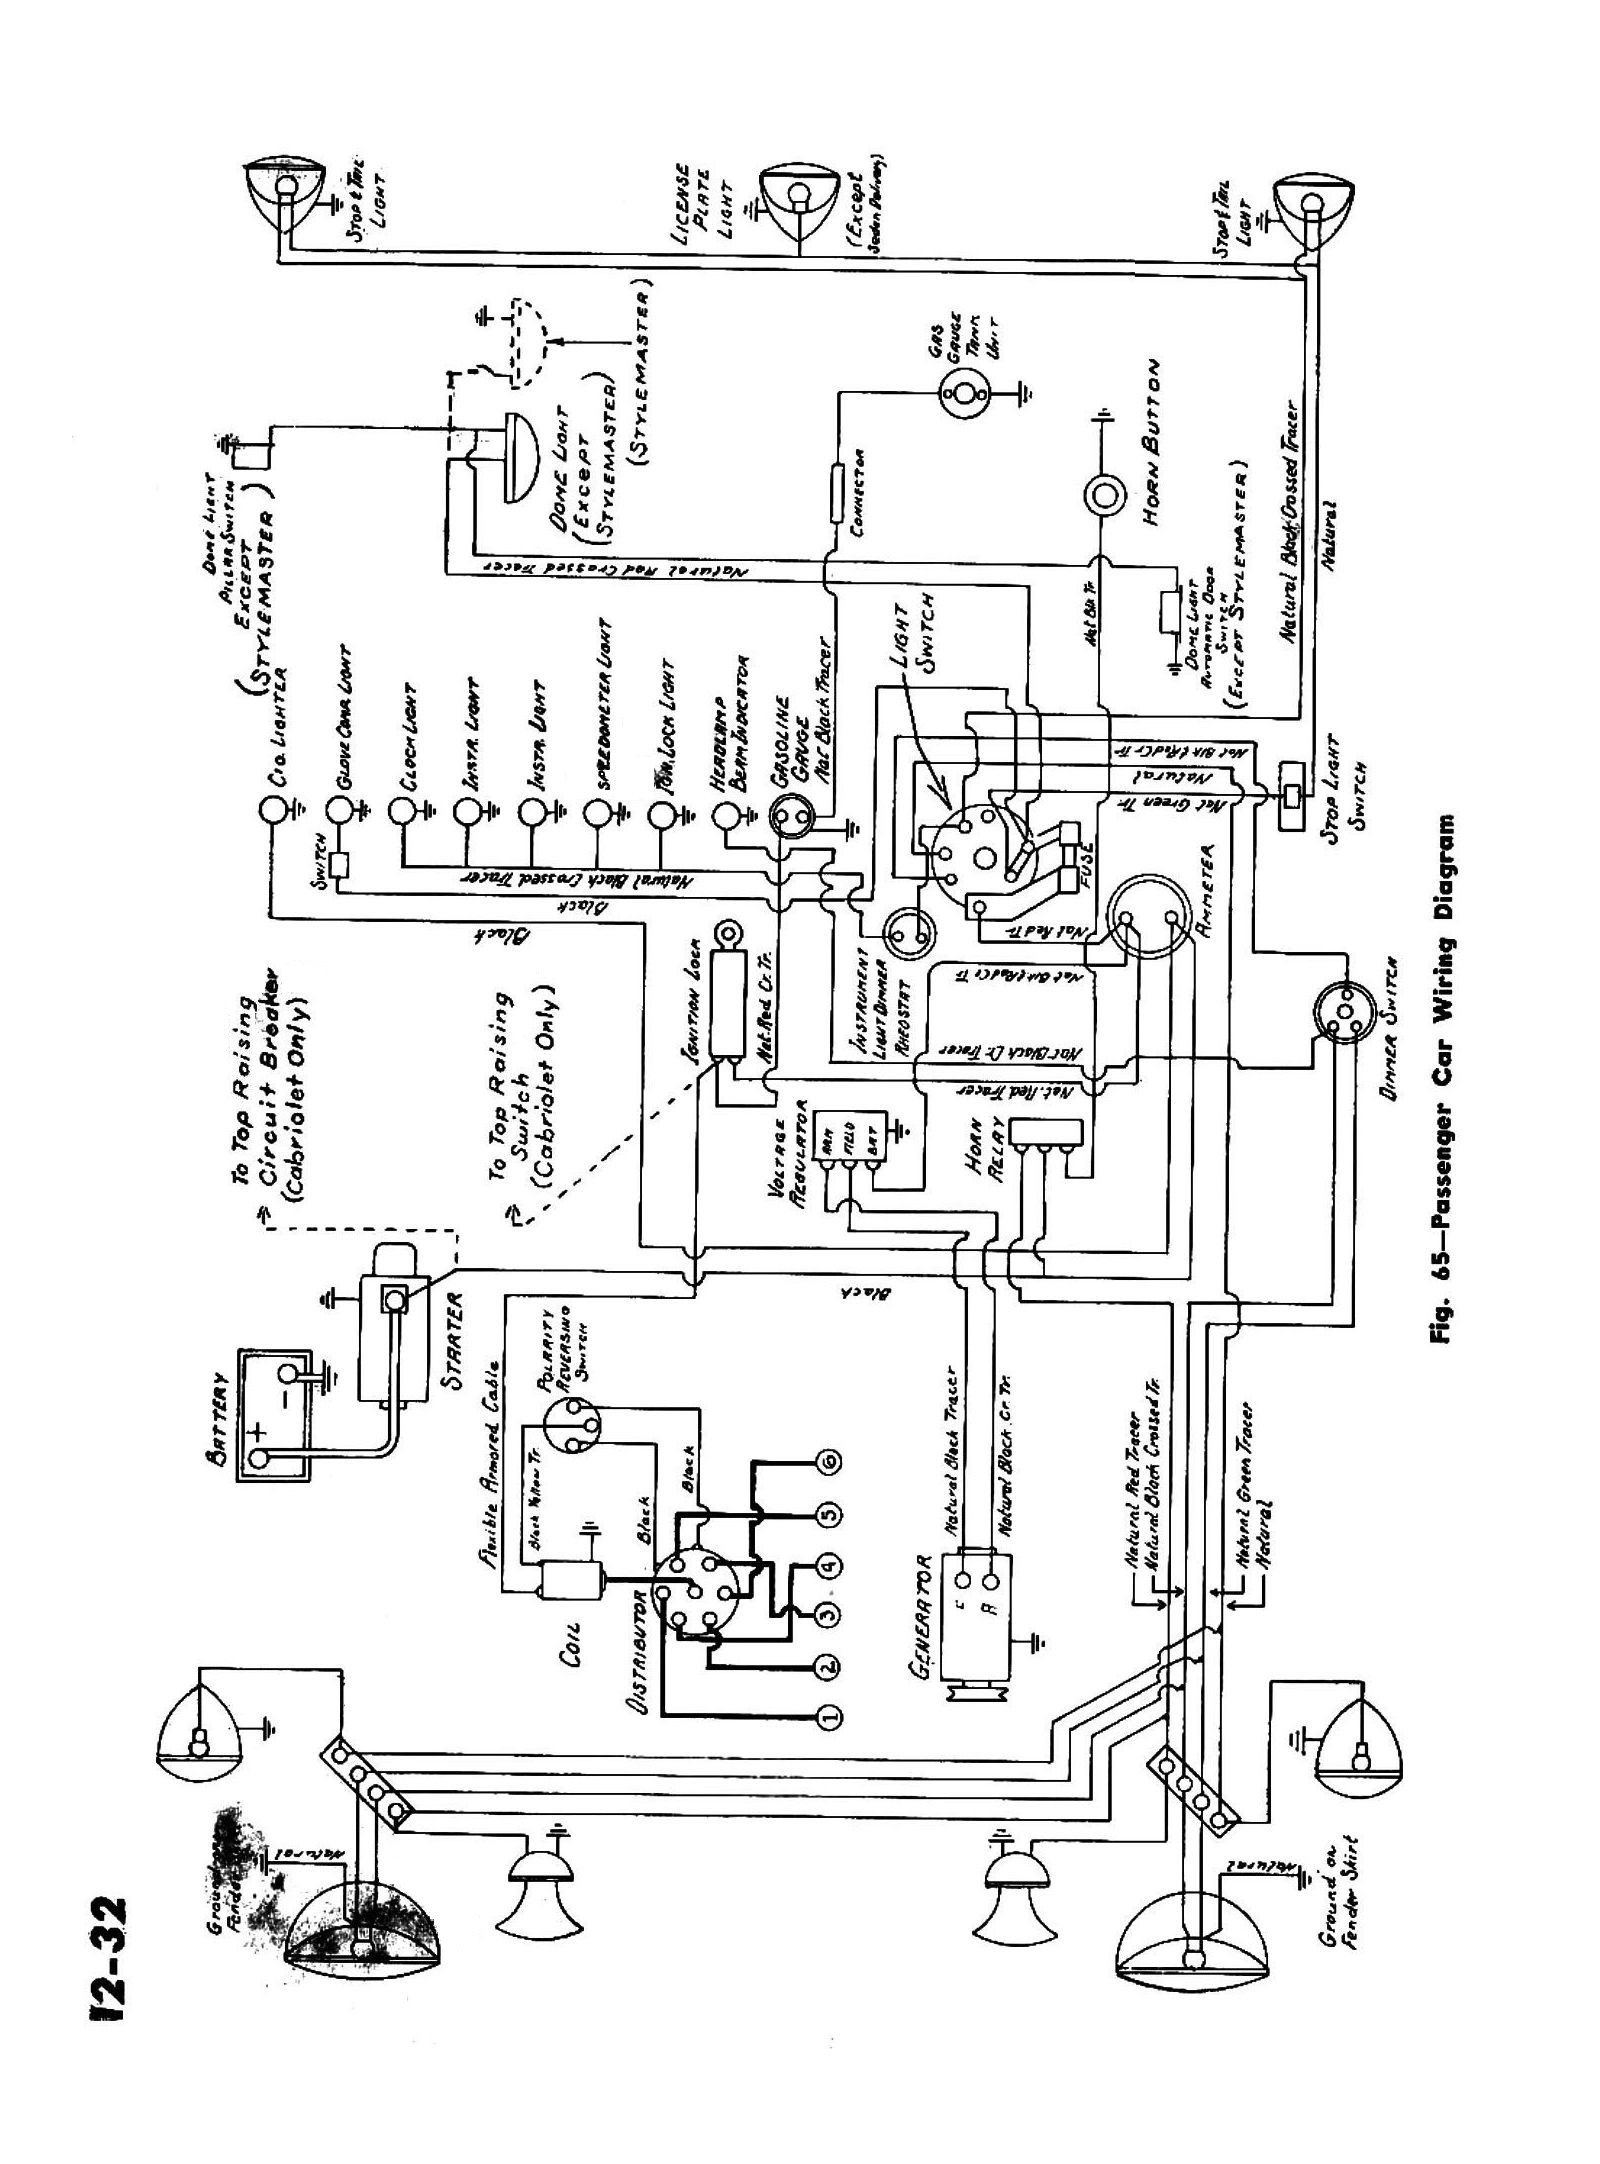 1947 Lincoln Wiring Diagram Schematics 1969 Chevy Diagrams Online